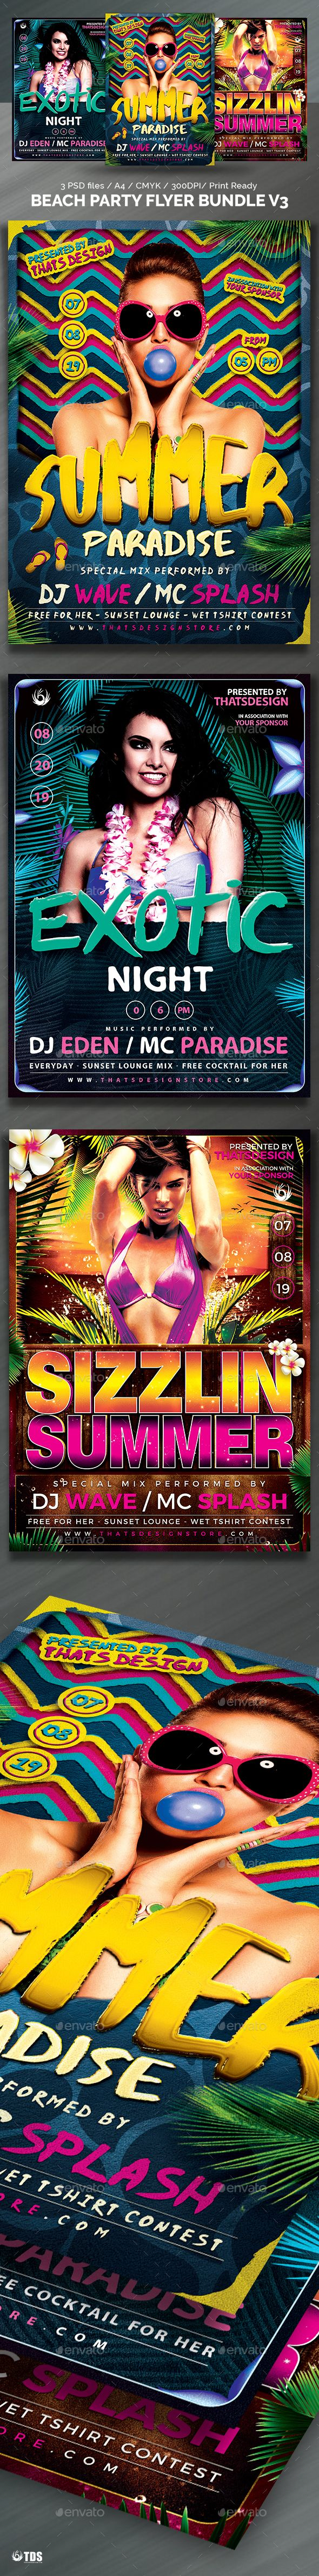 3 Beach Party Flyer PSD Templates • Only available here! → https://graphicriver.net/item/beach-party-flyer-bundle-v3/17222202?ref=pxcr